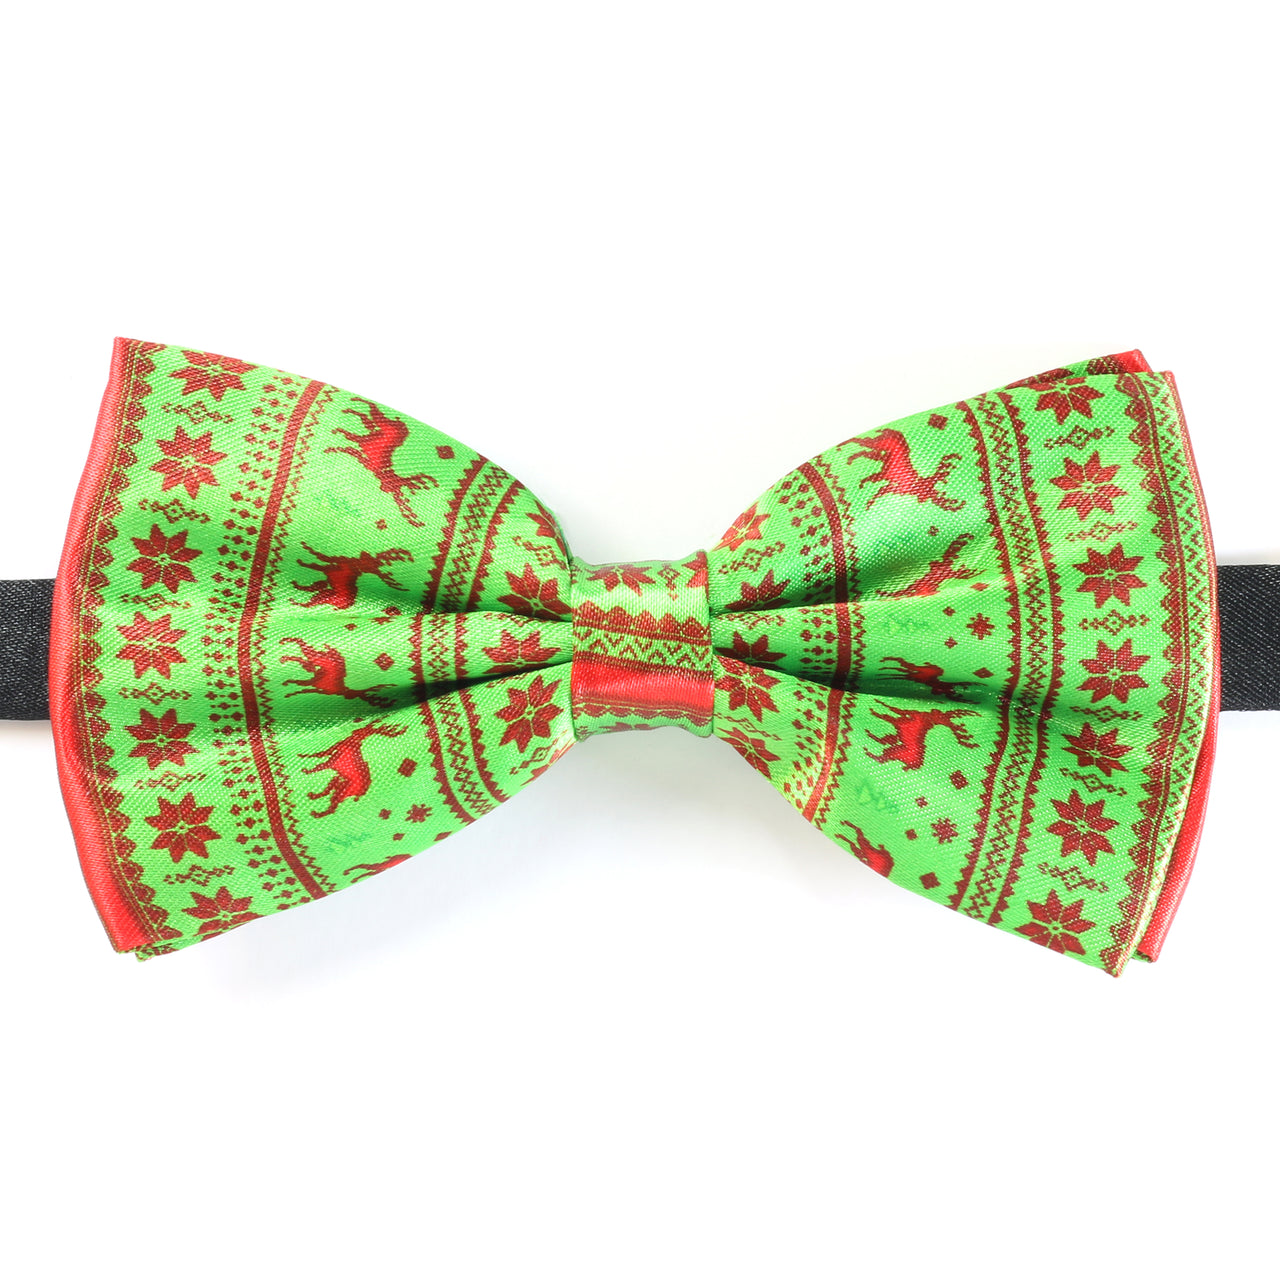 Christmas Bow Tie - Nordic Reindeer Snowflake - Green / Red